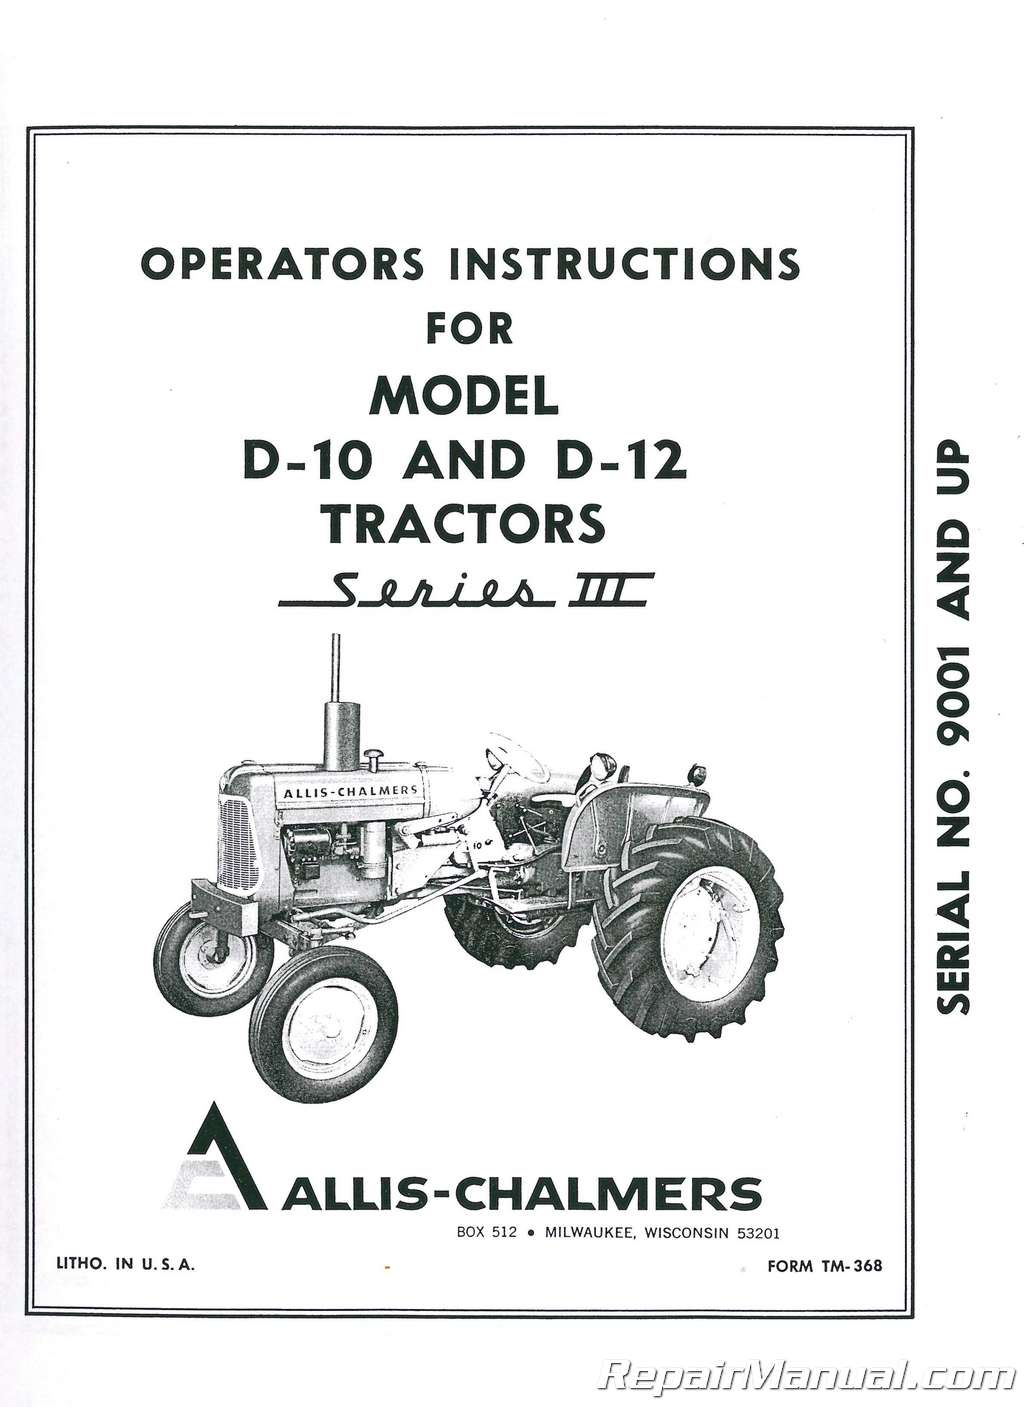 Allis Chalmers D10 D12 Series lll Tractor Operators Manual